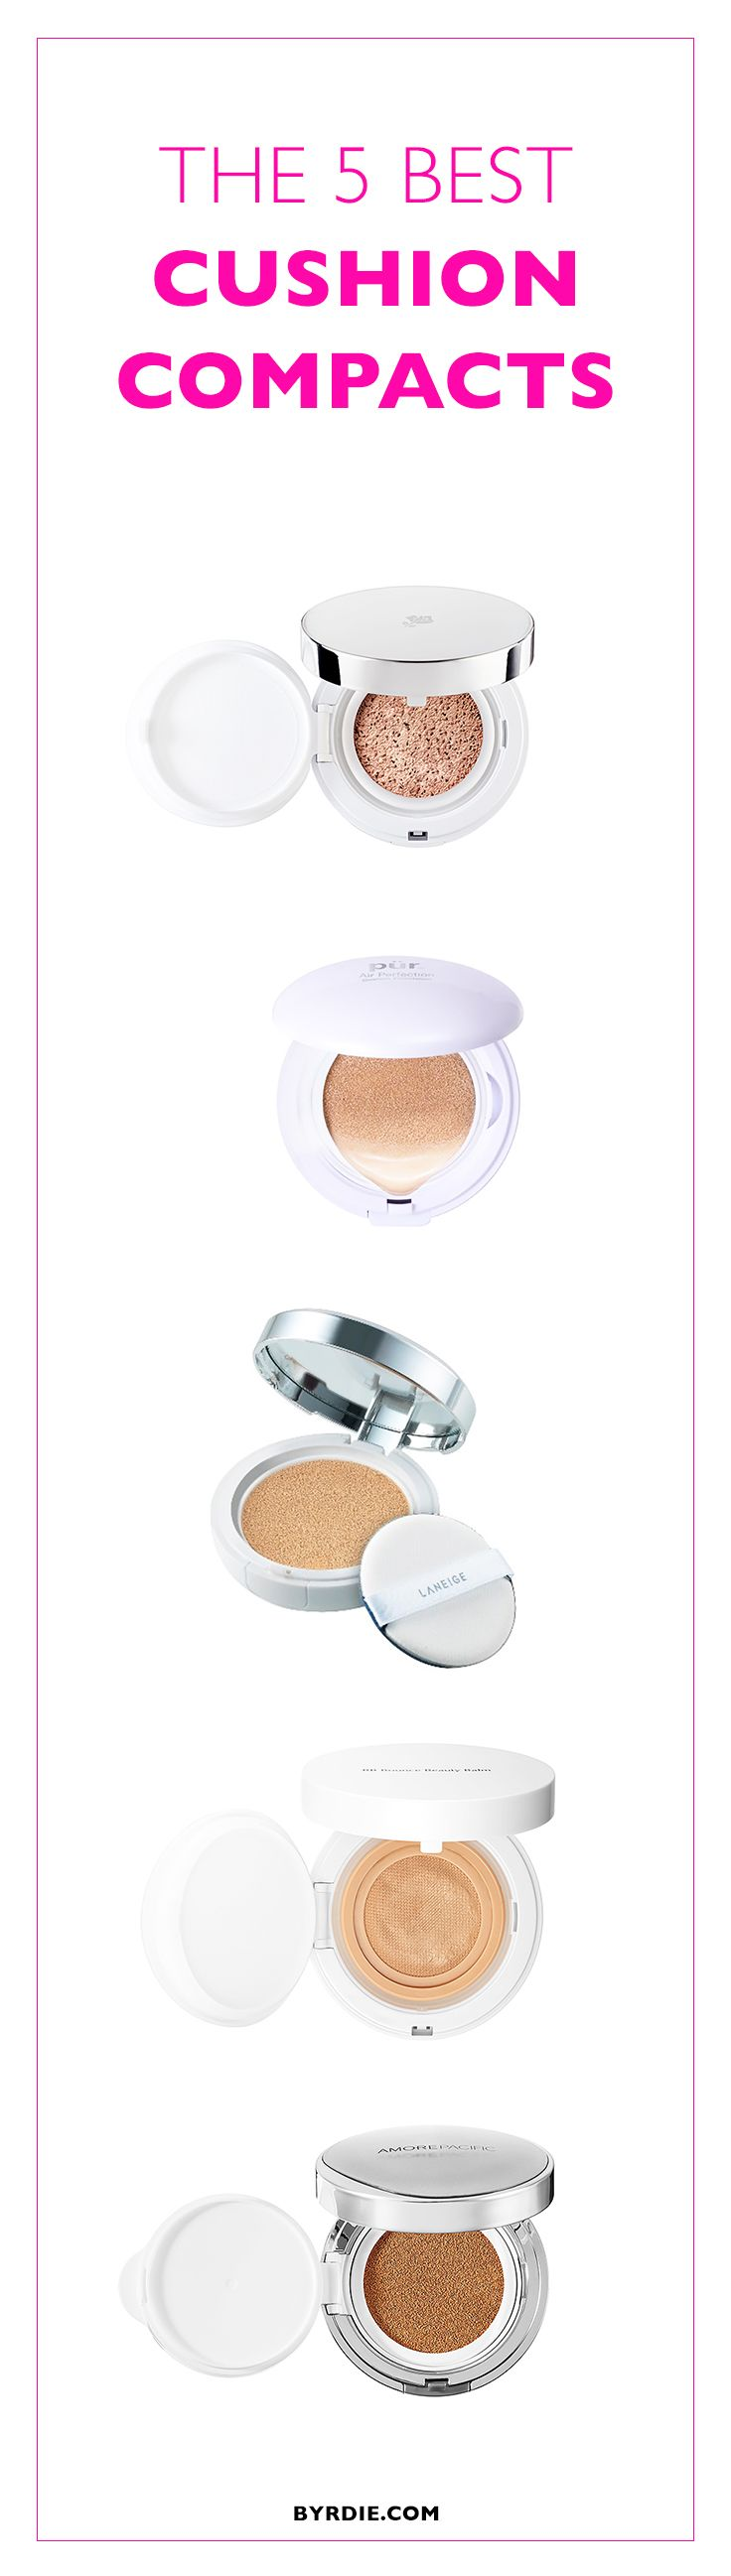 The 5 cushion compacts the Internet love most